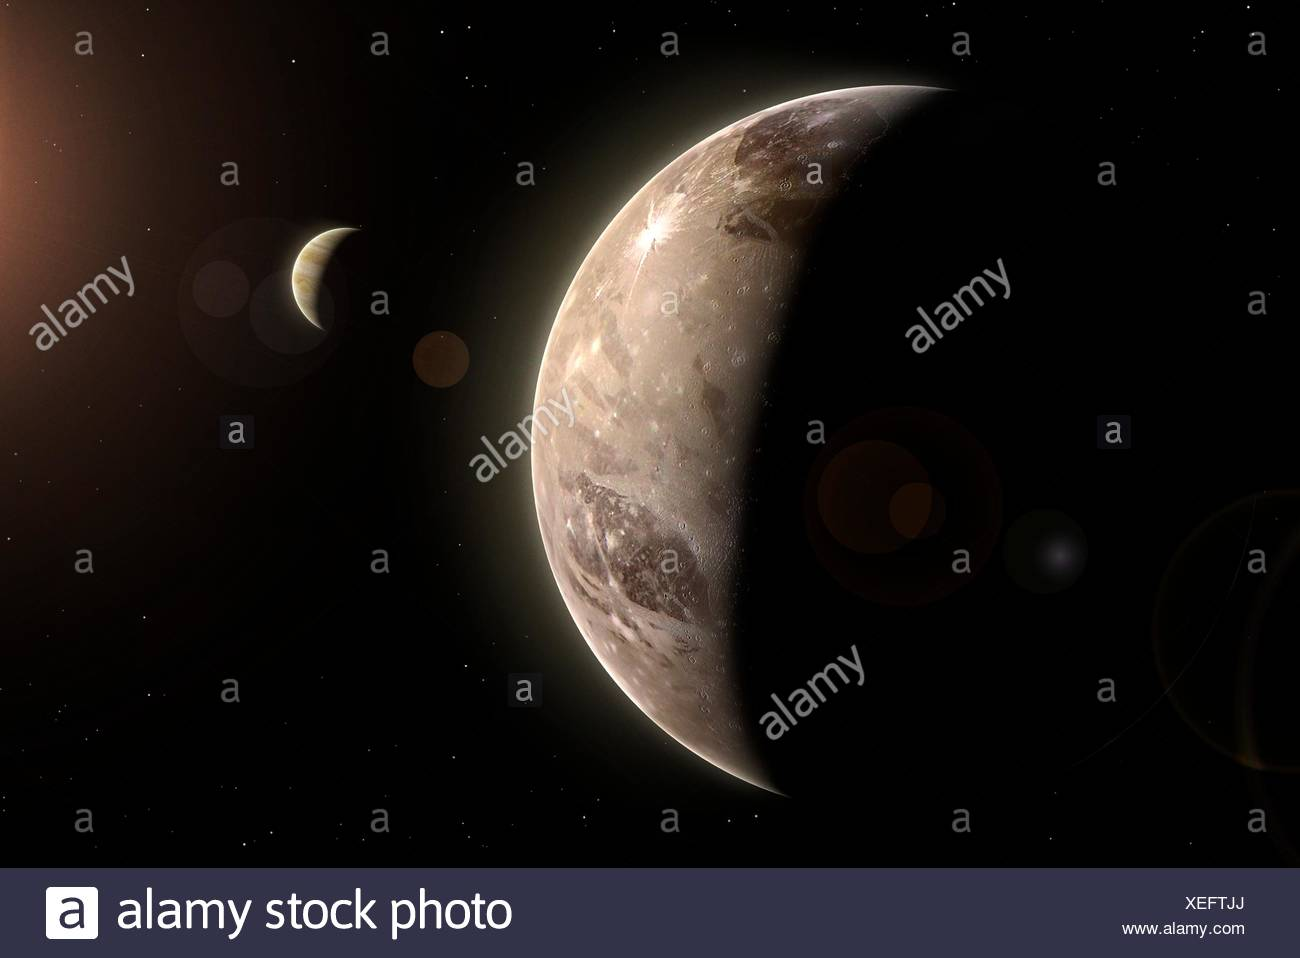 Ganymede is the largest of the four Galilean moons of Jupiter - indeed the largest moon of any known planet, bigger even than Mercury. Its surface is a mixture of ice, fractures and craters. Jupiter is also seen in the background. - Stock Image